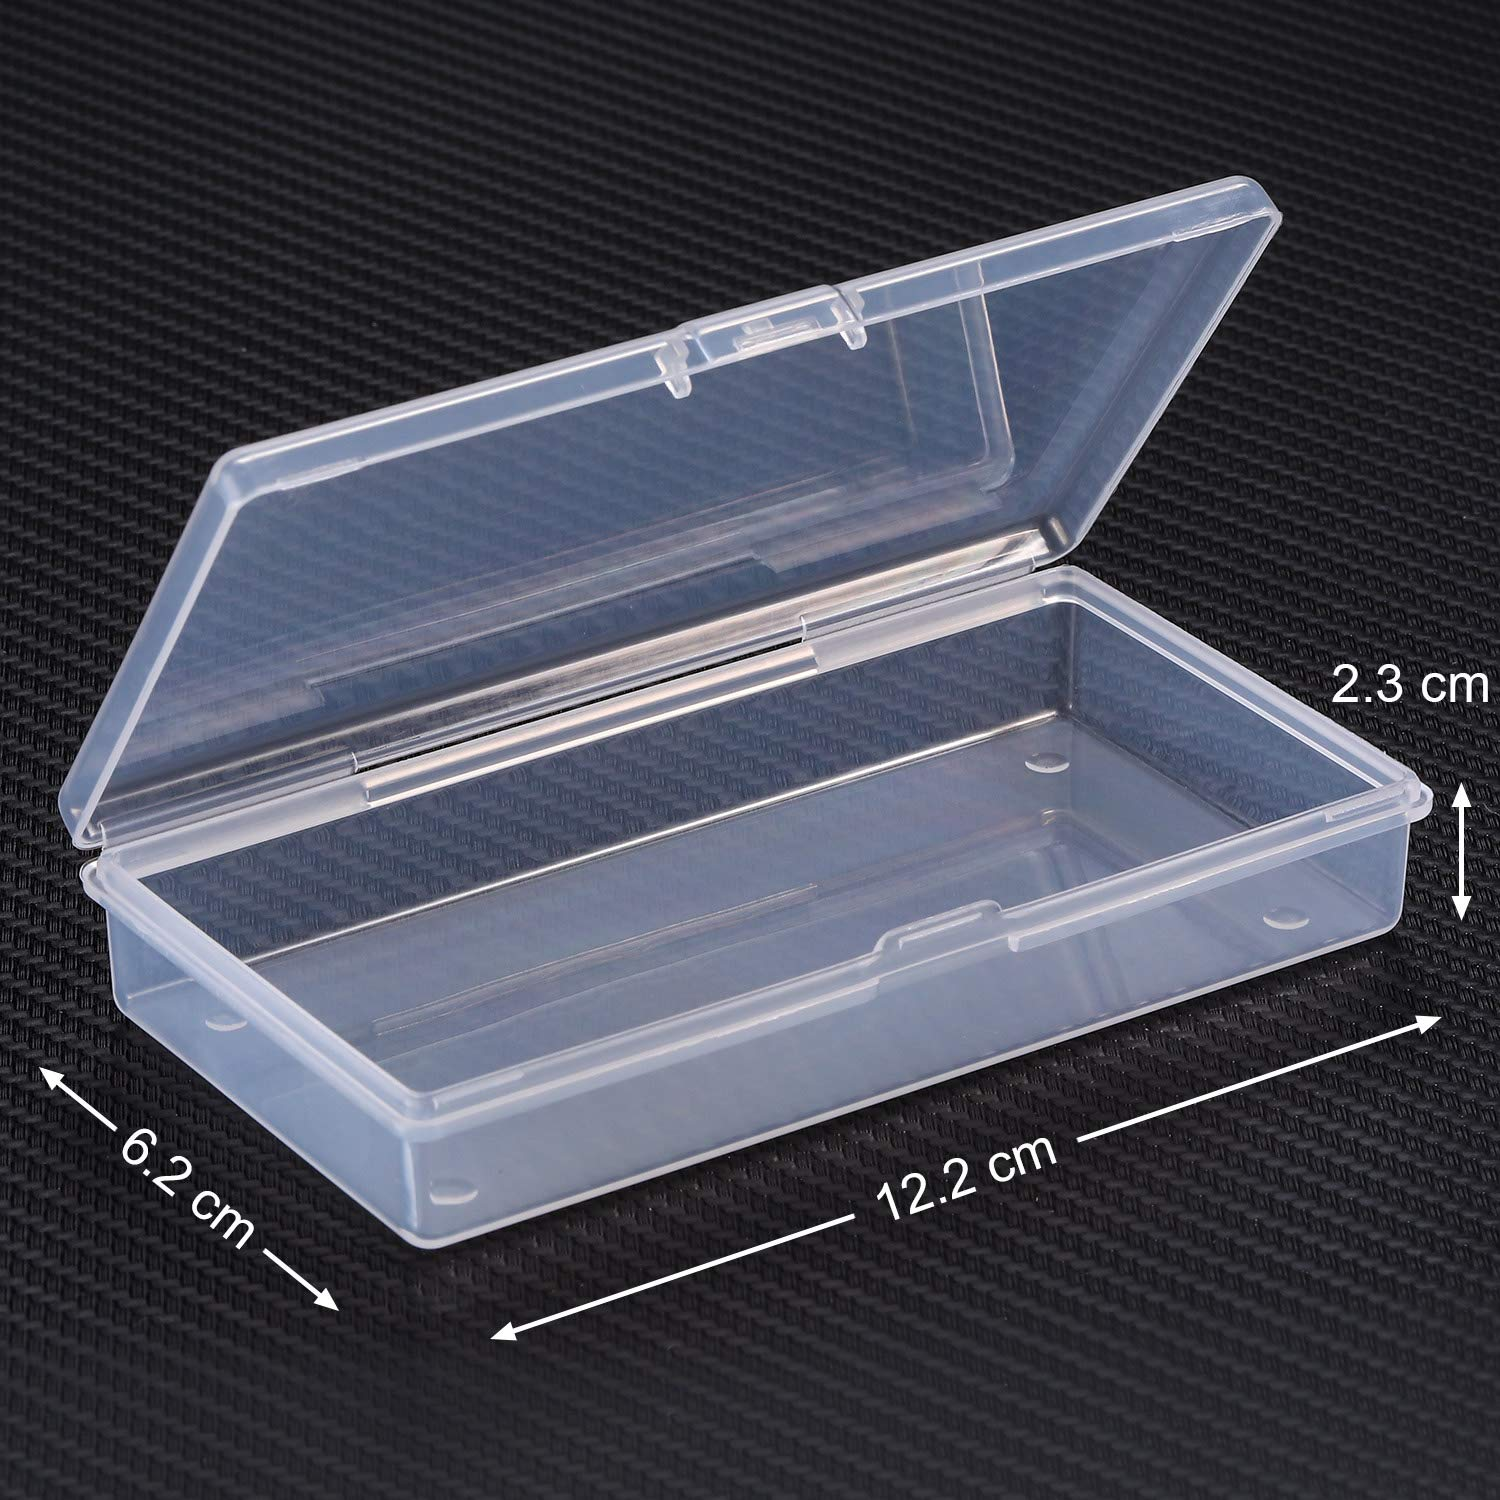 SATINIOR 12 Pack Clear Plastic Beads Storage Containers Box with Hinged Lid for Beads and More 3.3 x 3.3 x 1.2 Inch